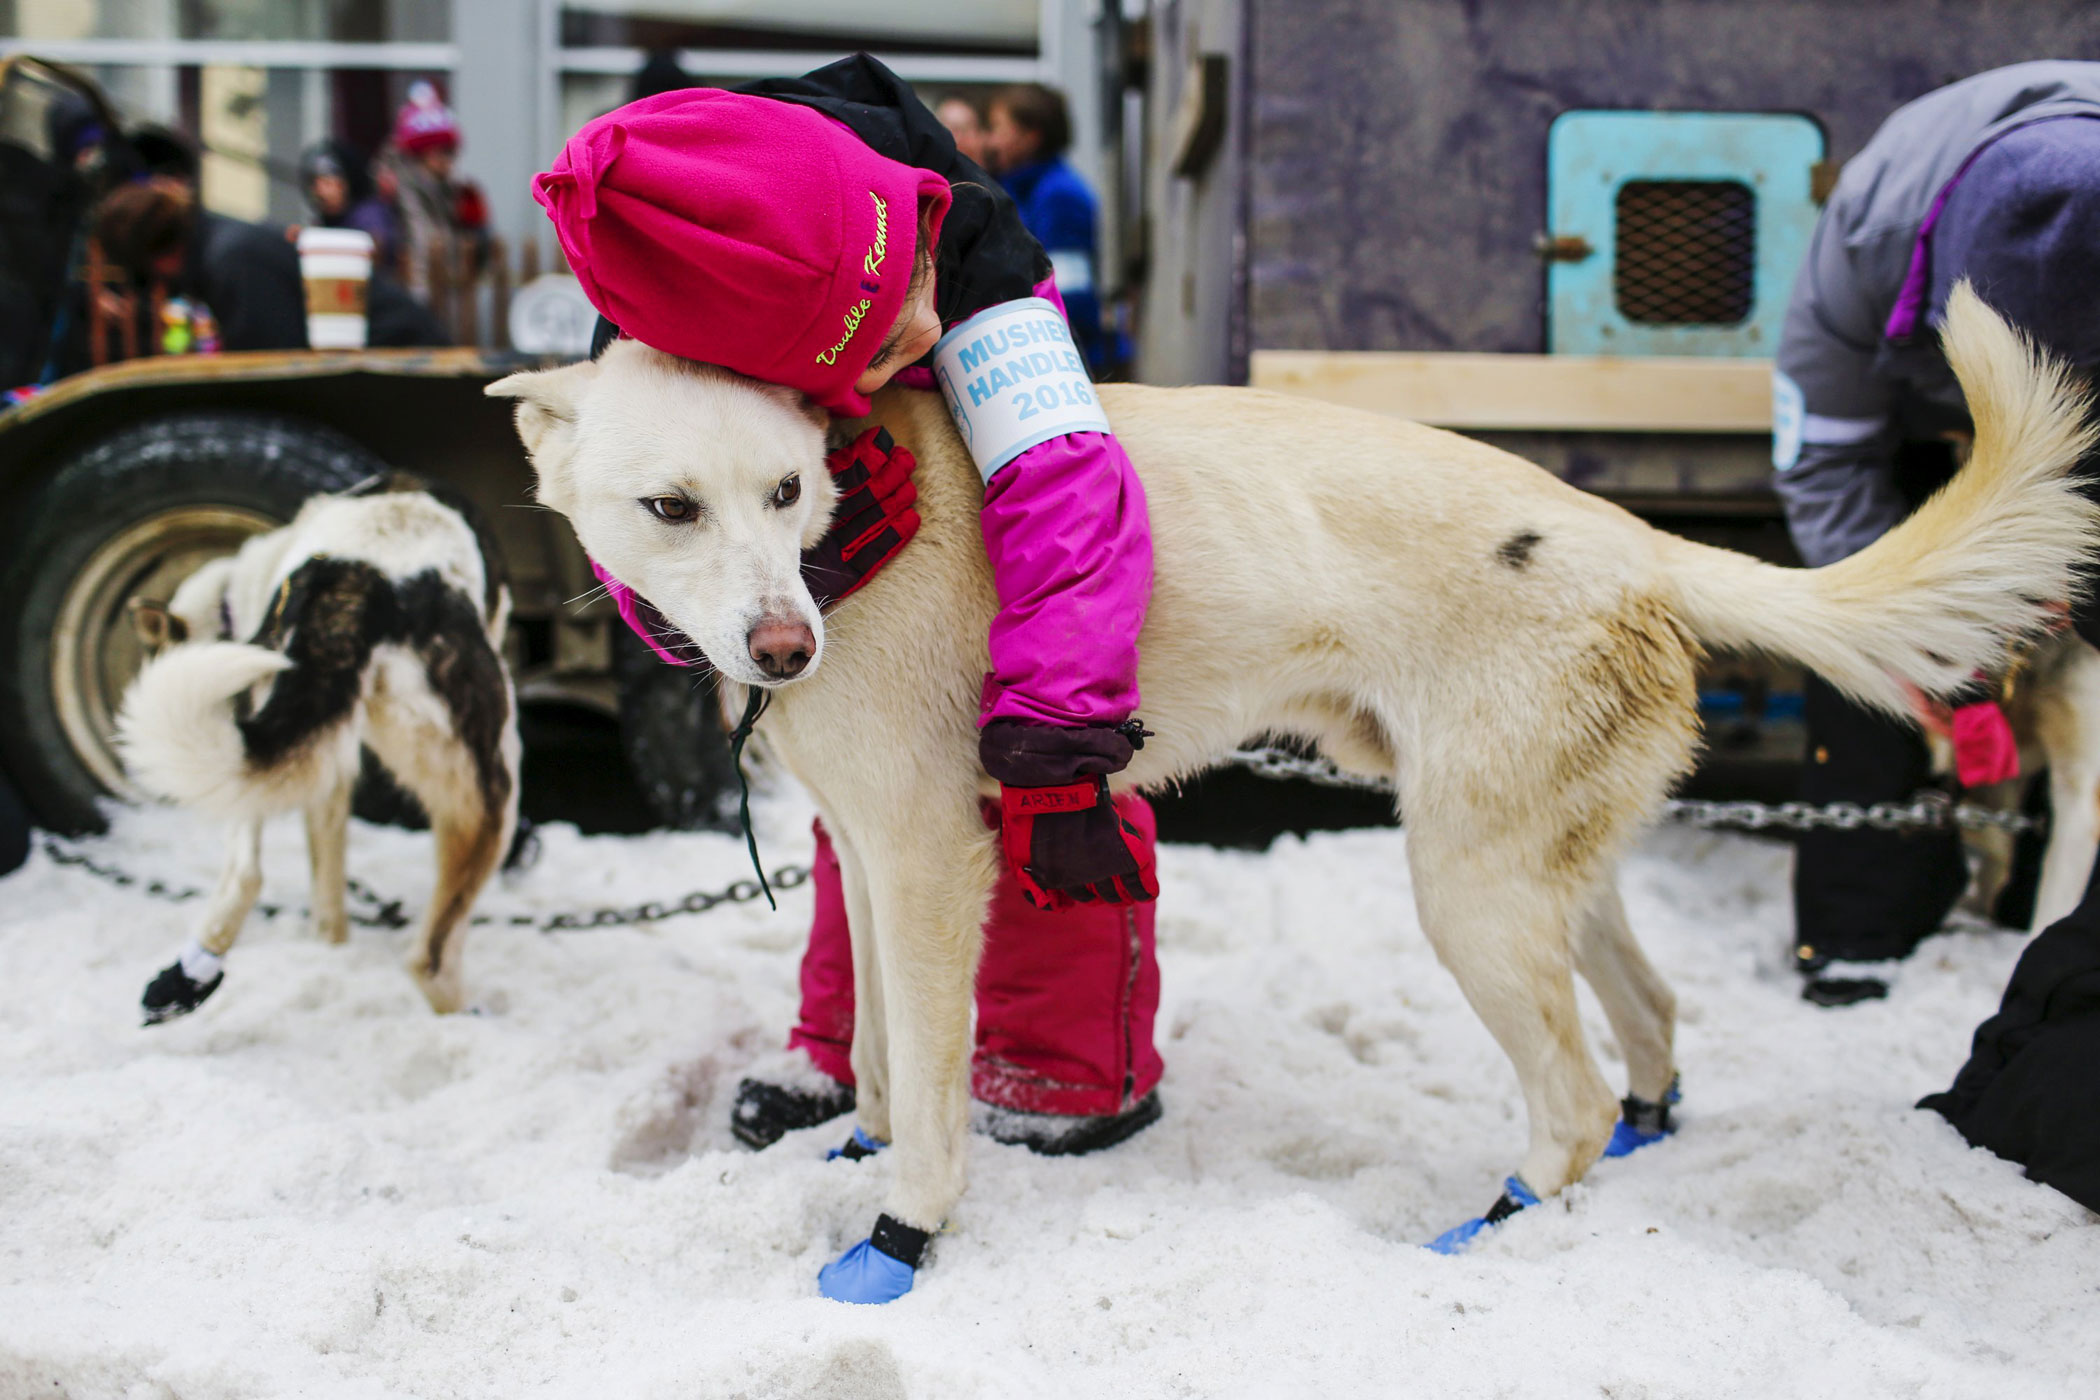 A handler with Alan Eischen's team embraces one of Eischen's dogs before the ceremonial start of the Iditarod Trail Sled Dog Race in Anchorage, Alaska on March 5.